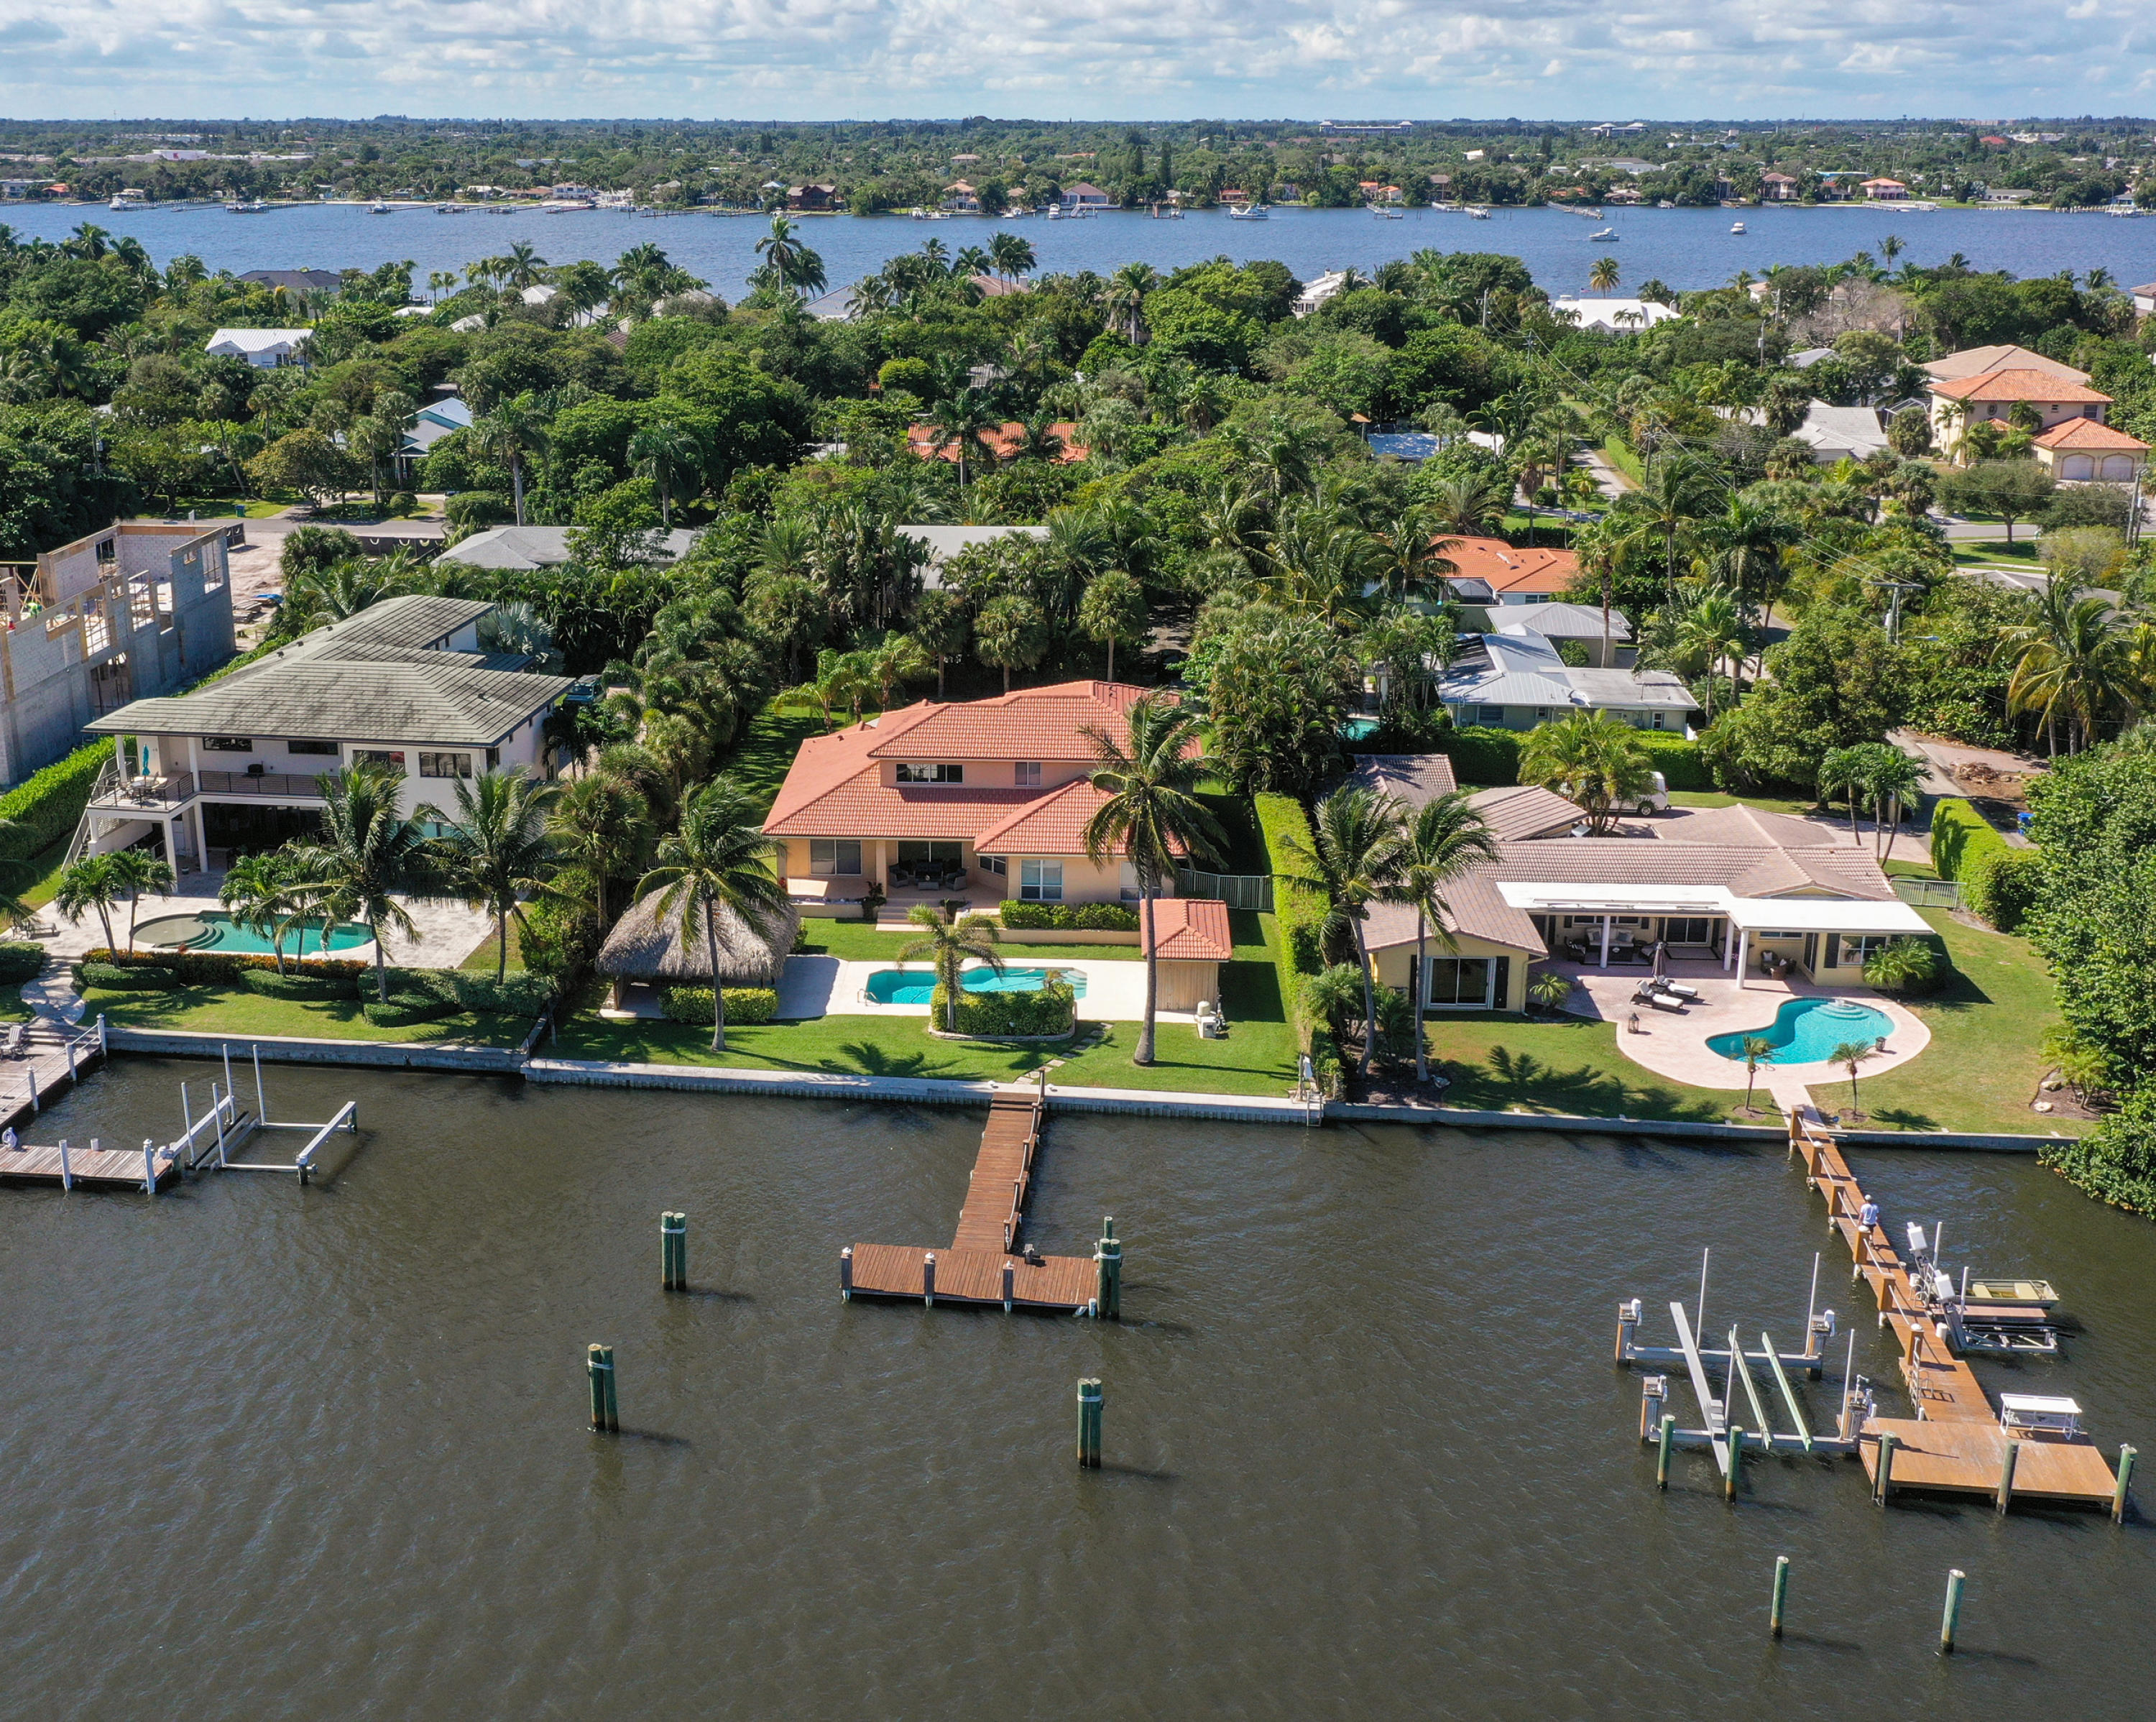 HYPOLUXO ISLAND LANTANA REAL ESTATE